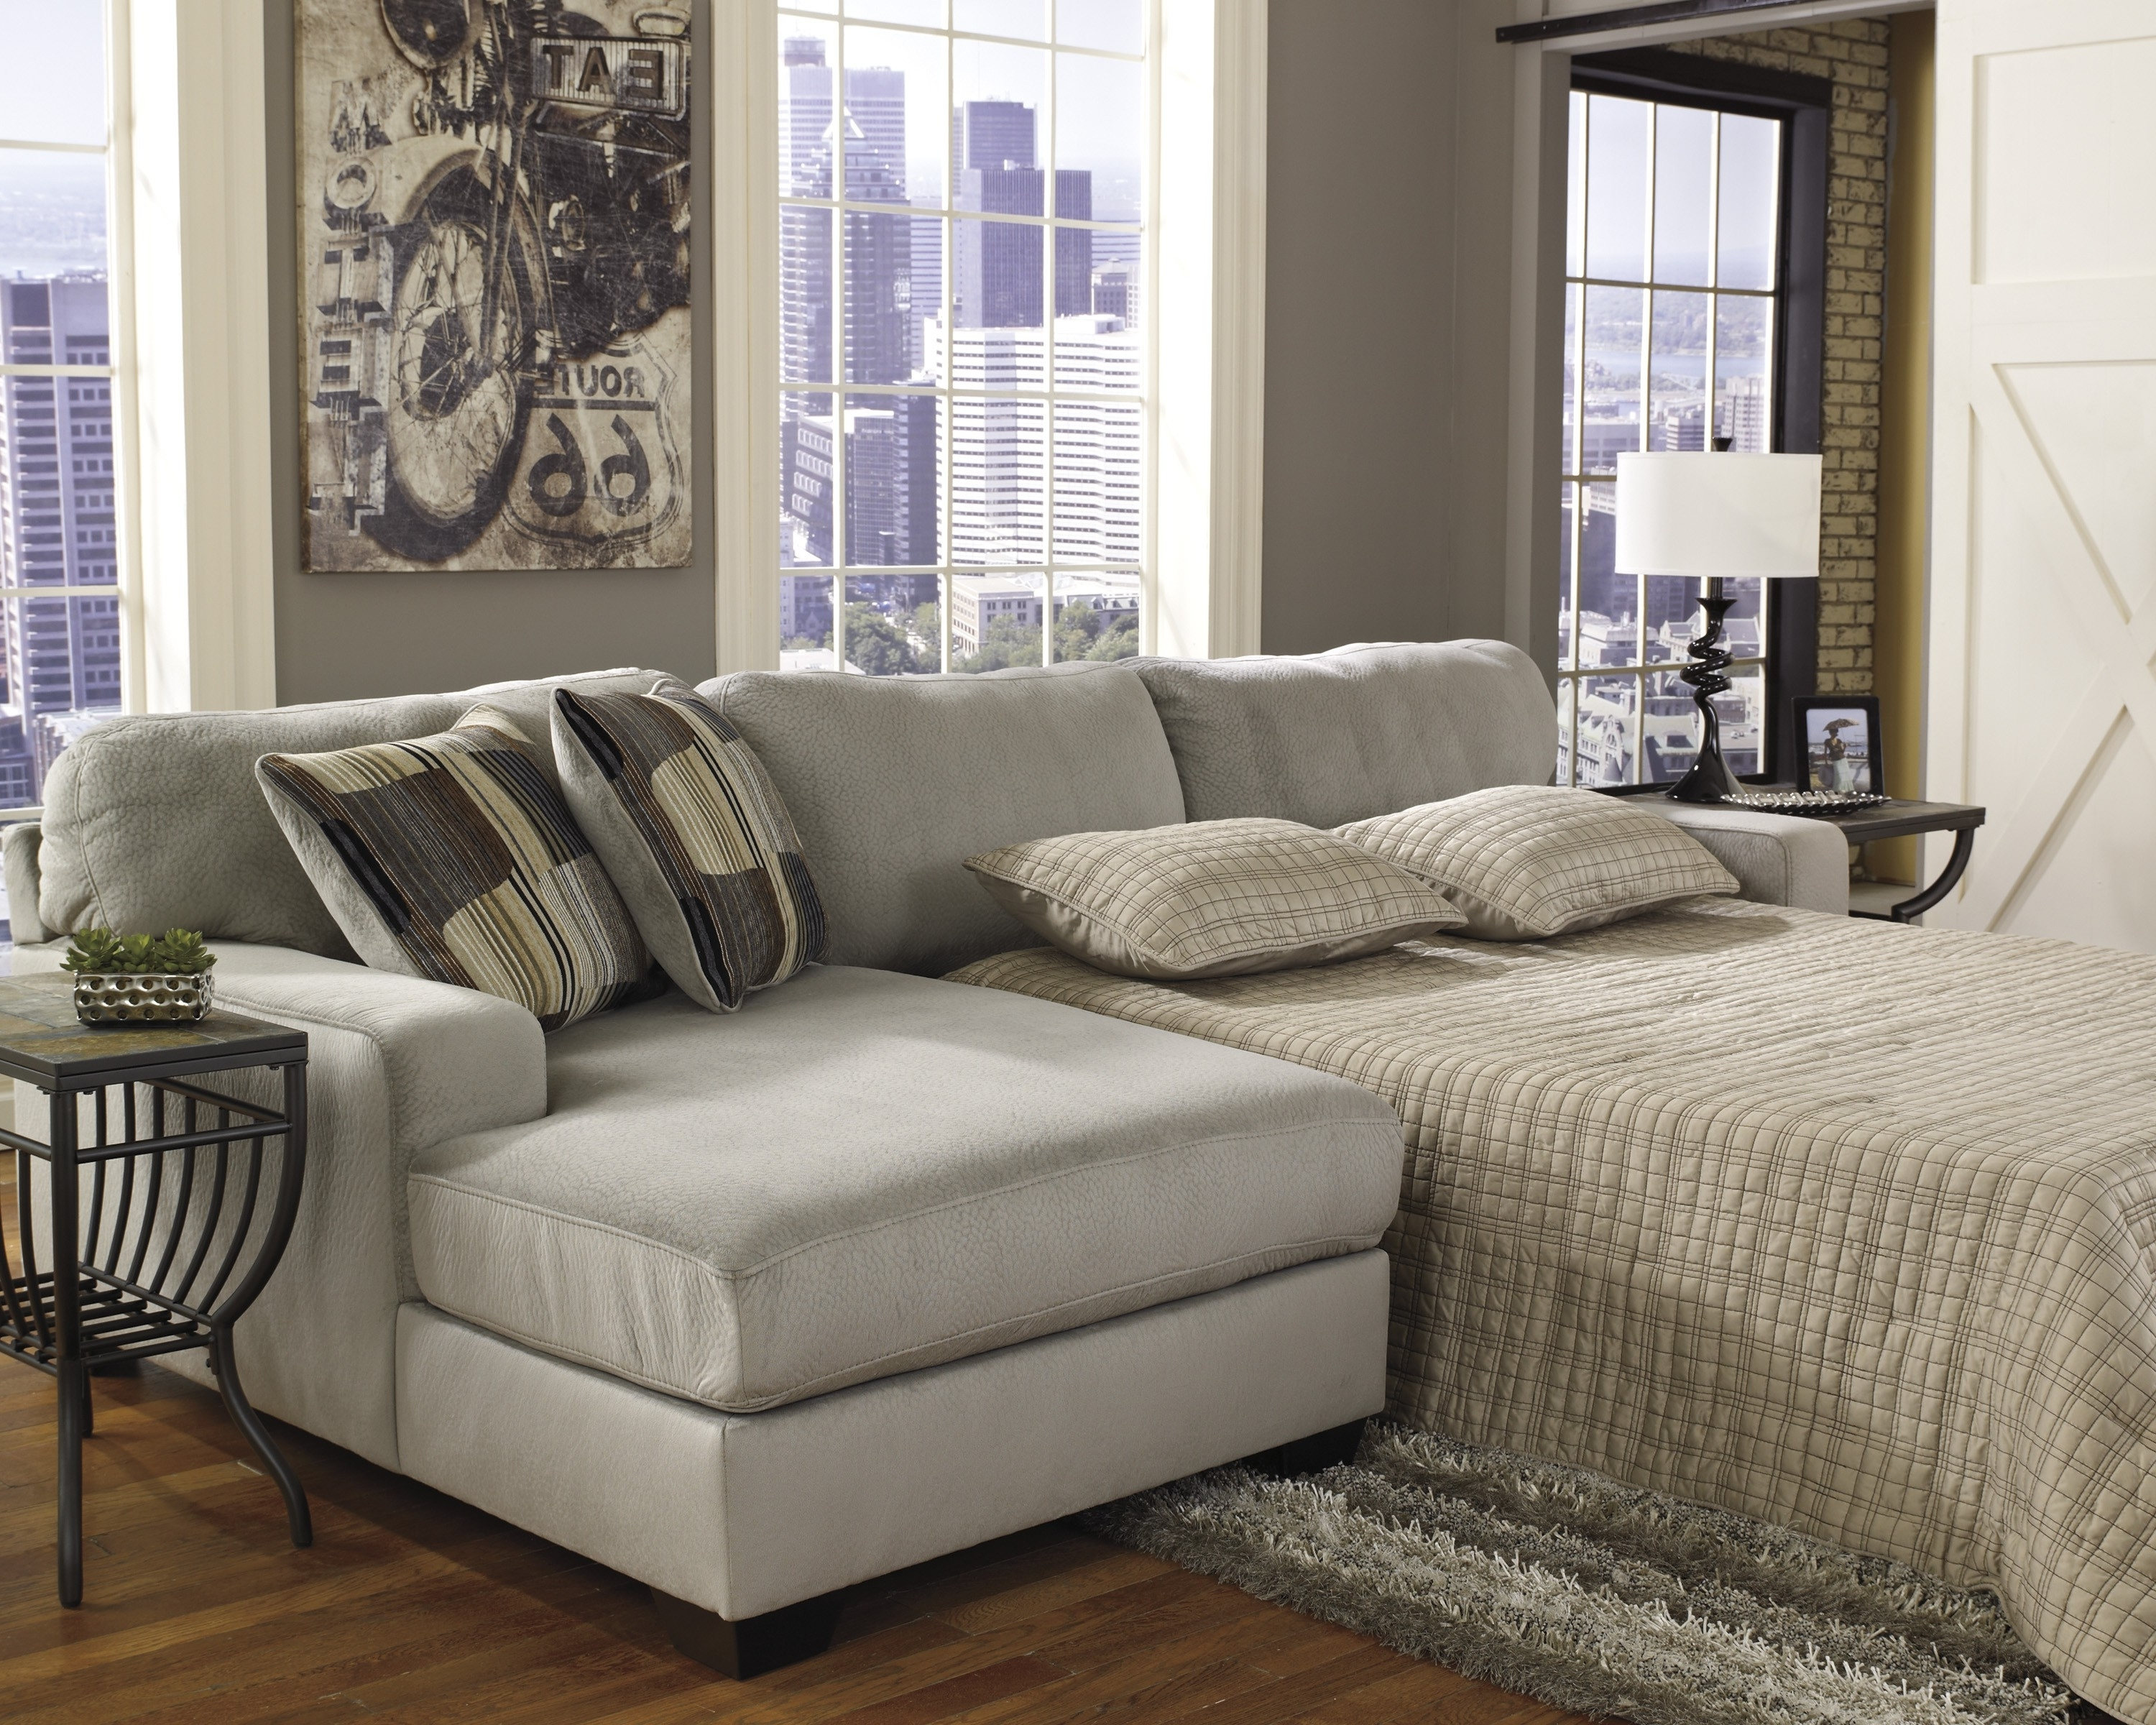 Most Current L Shaped Sectional Sleeper Sofas In Sofas : Modular Sofa U Shaped Sectional Small Sectional Couch  (View 12 of 15)